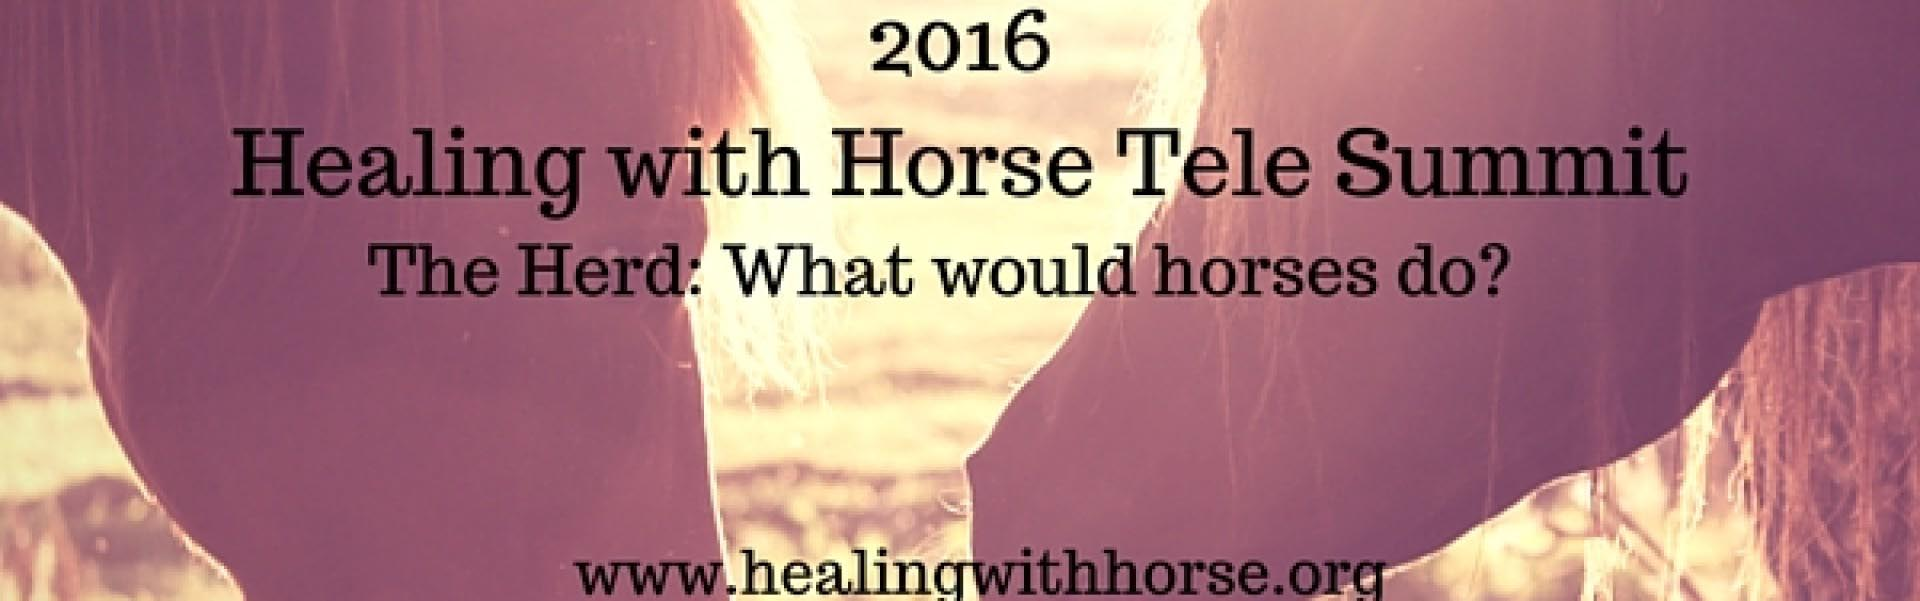 Healing with Horse Collective